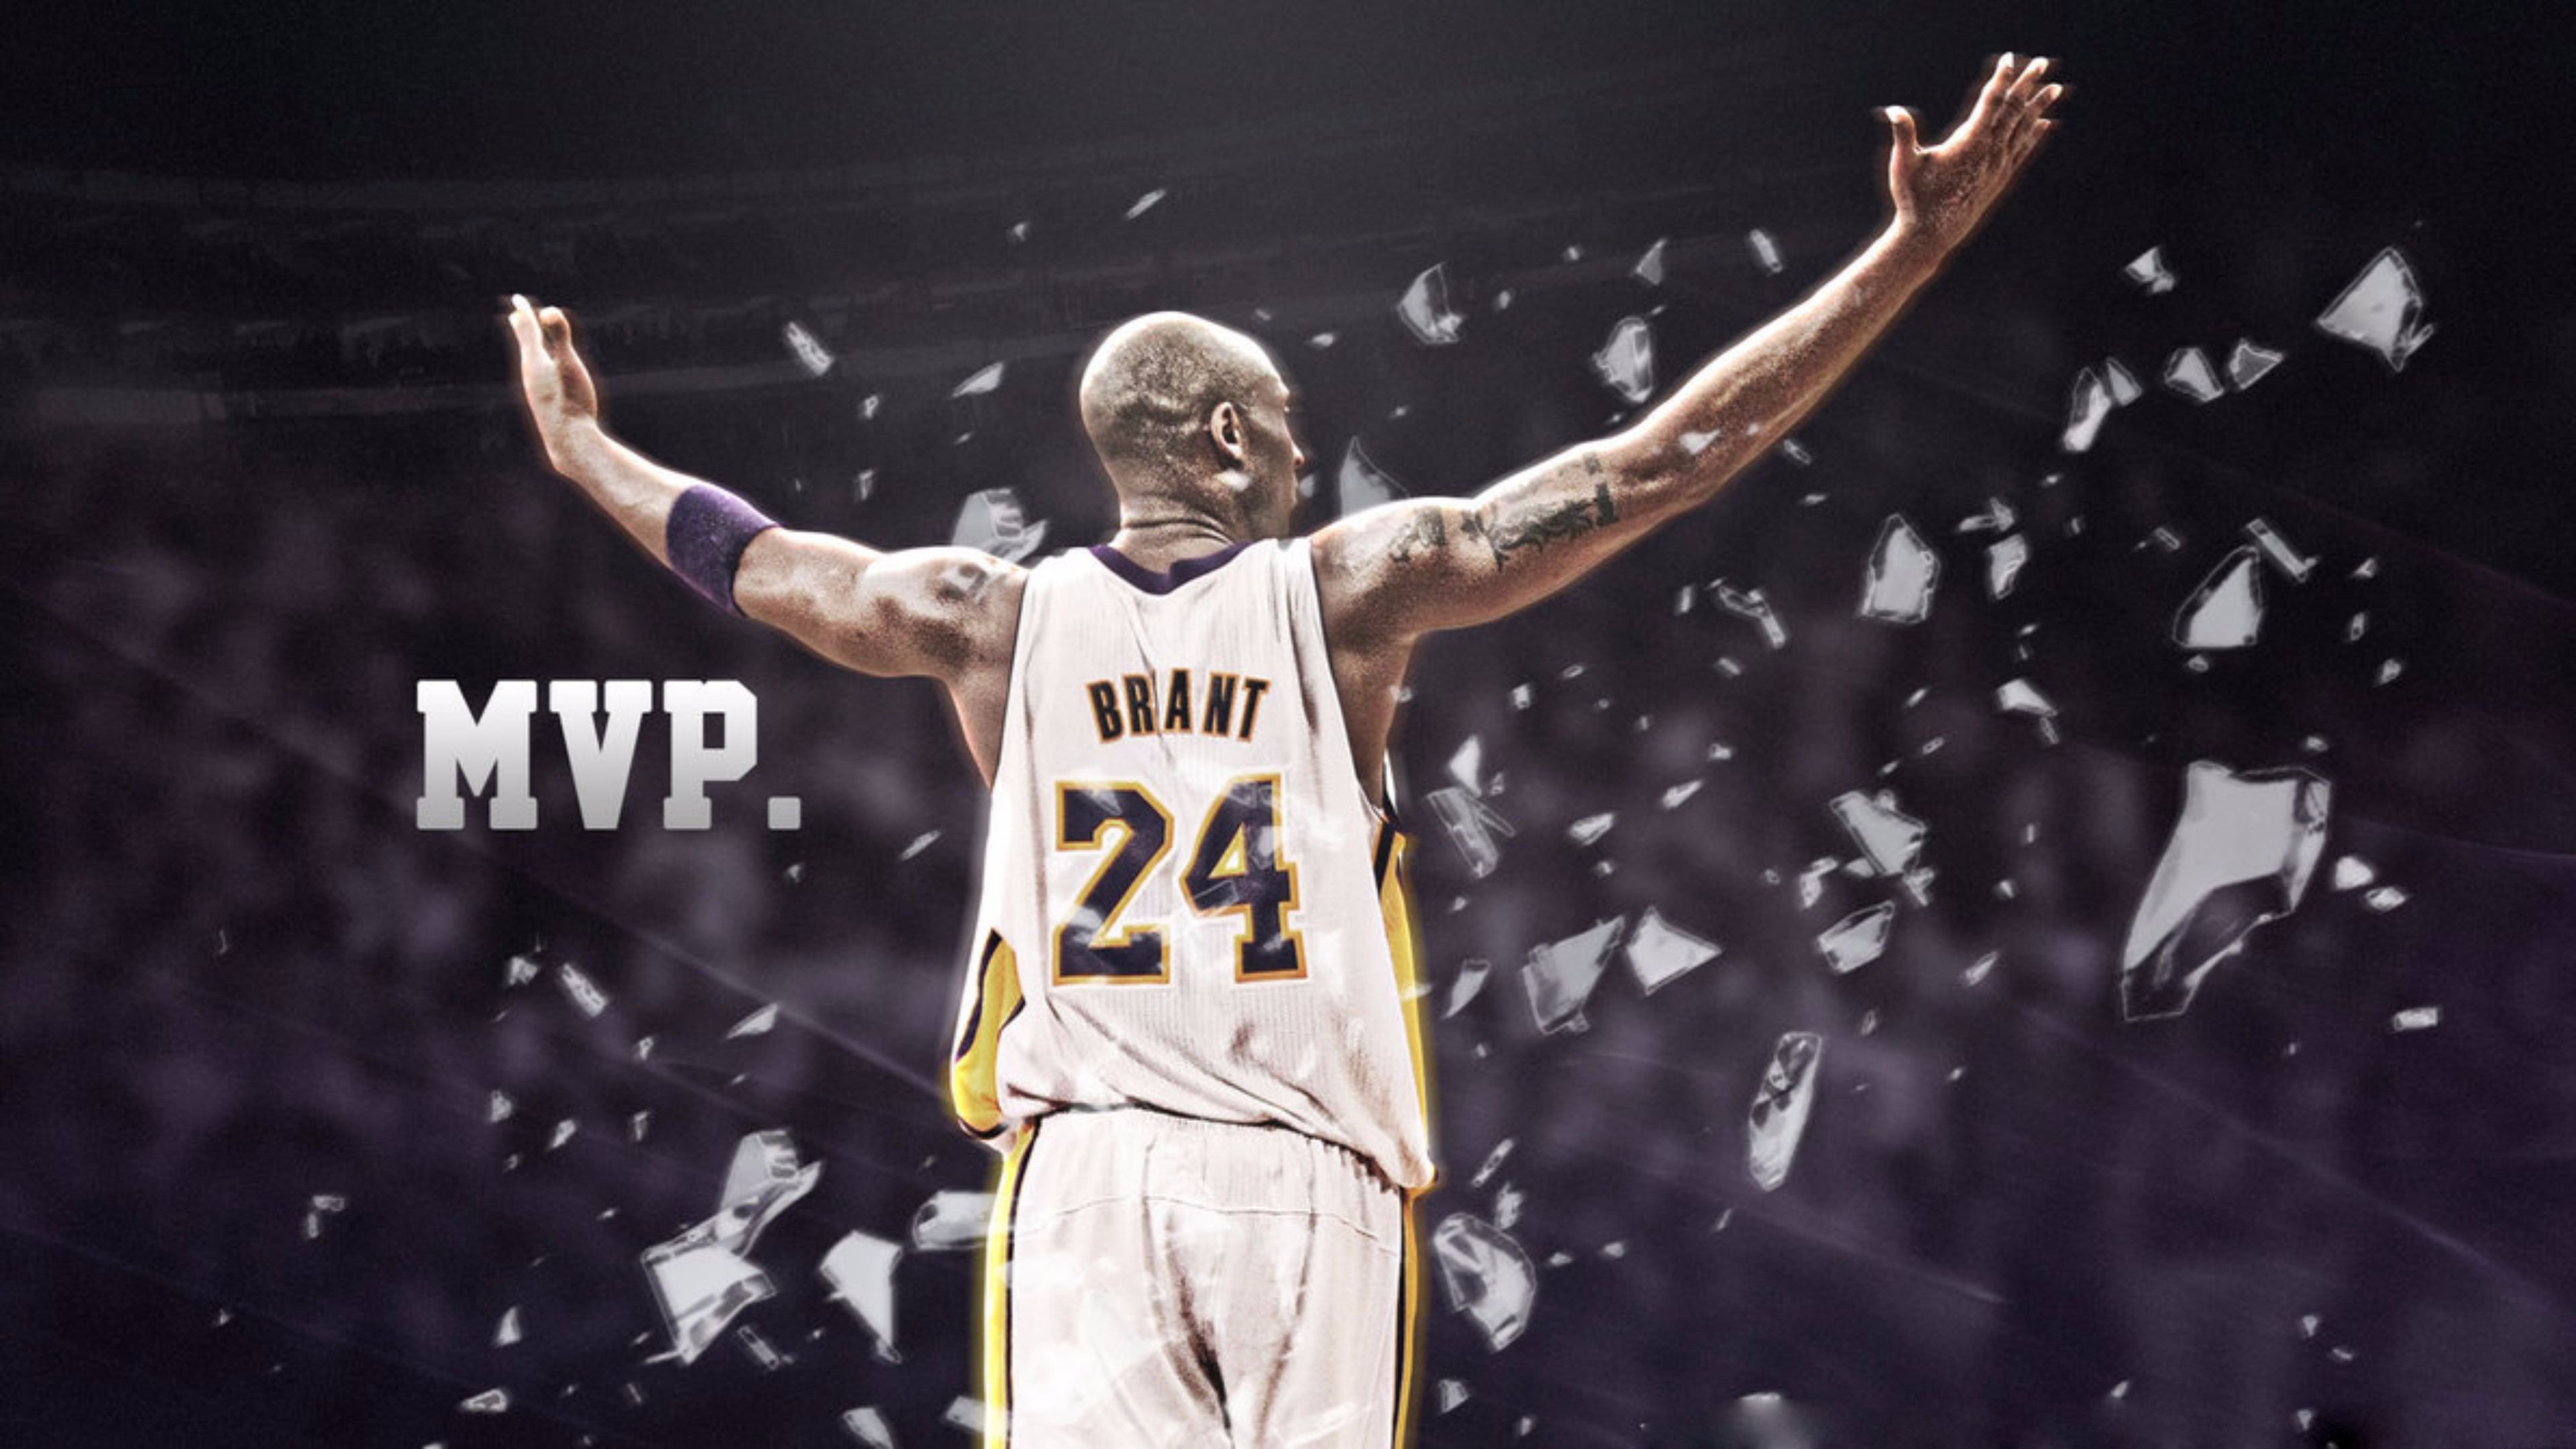 Kobe Bryant Wallpapers High Resolution and Quality DownloadKobe Bryant